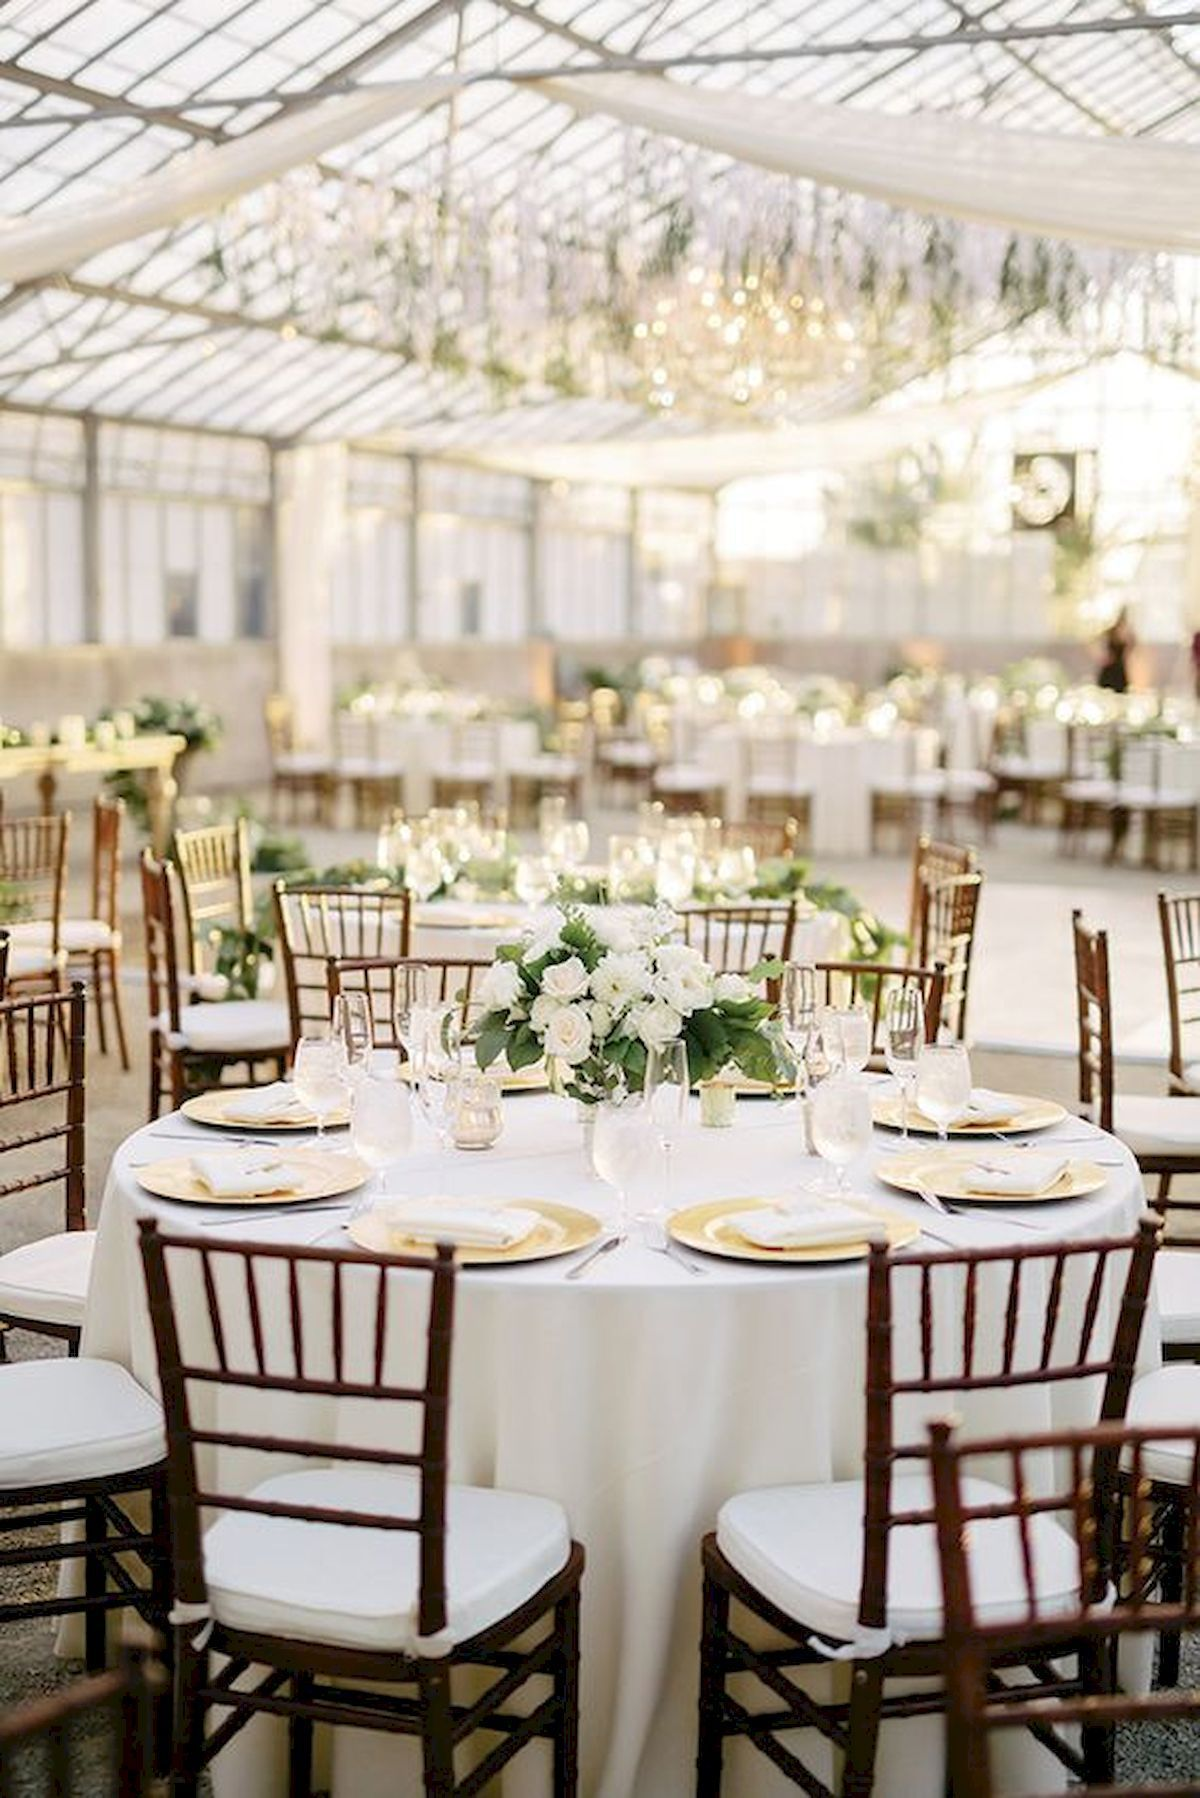 33 Best Wedding Decorations Indoor Ideas For Summer Adorable 33